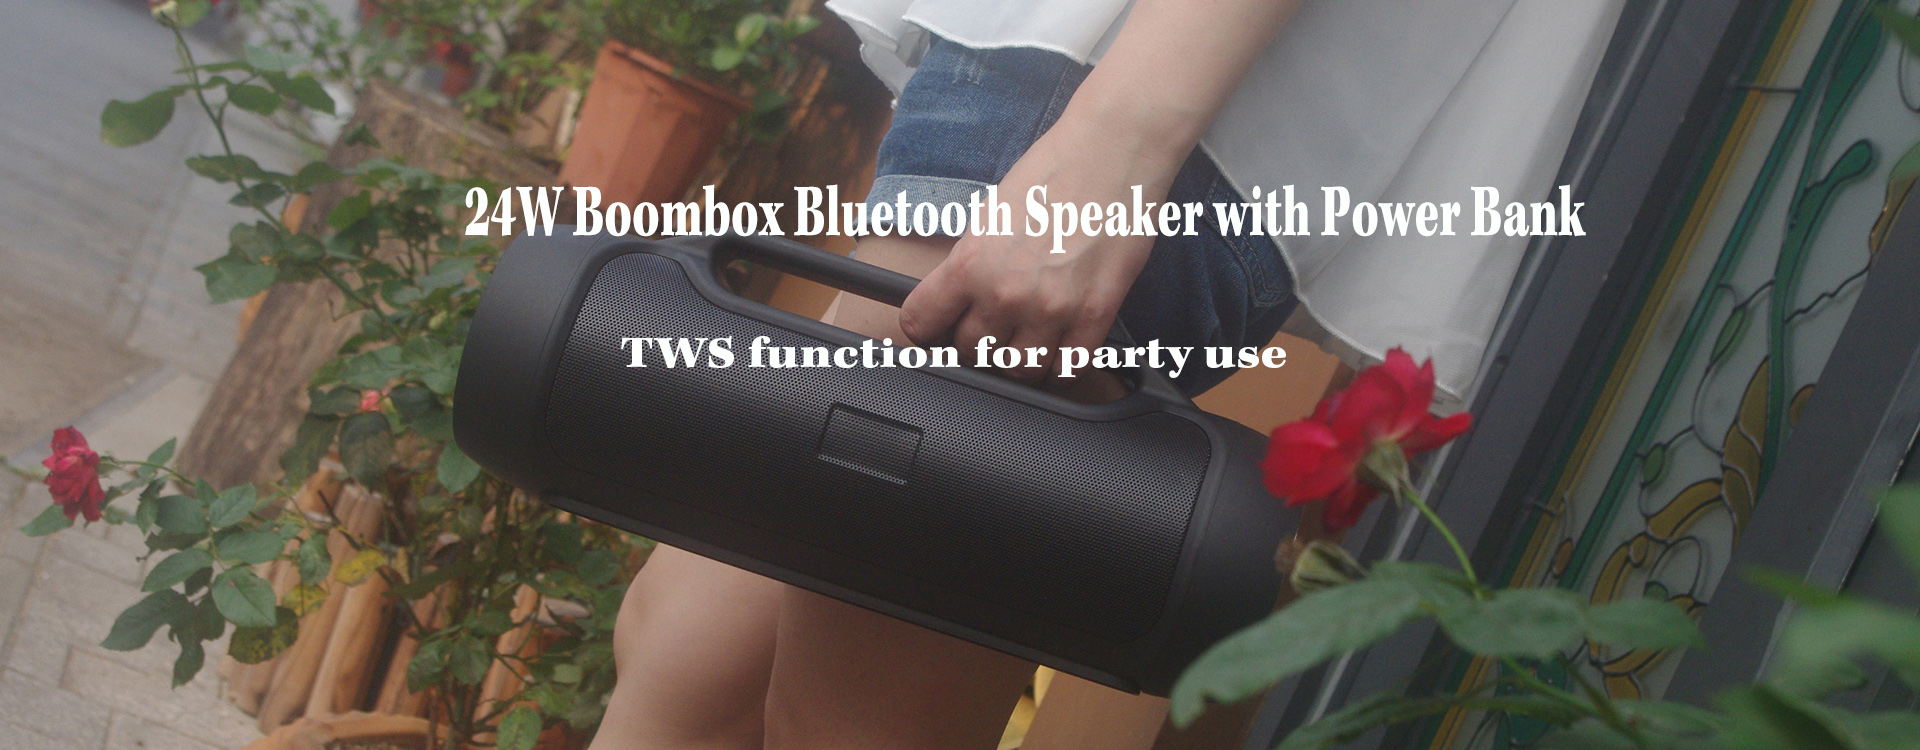 portable stereo wireless speaker banner